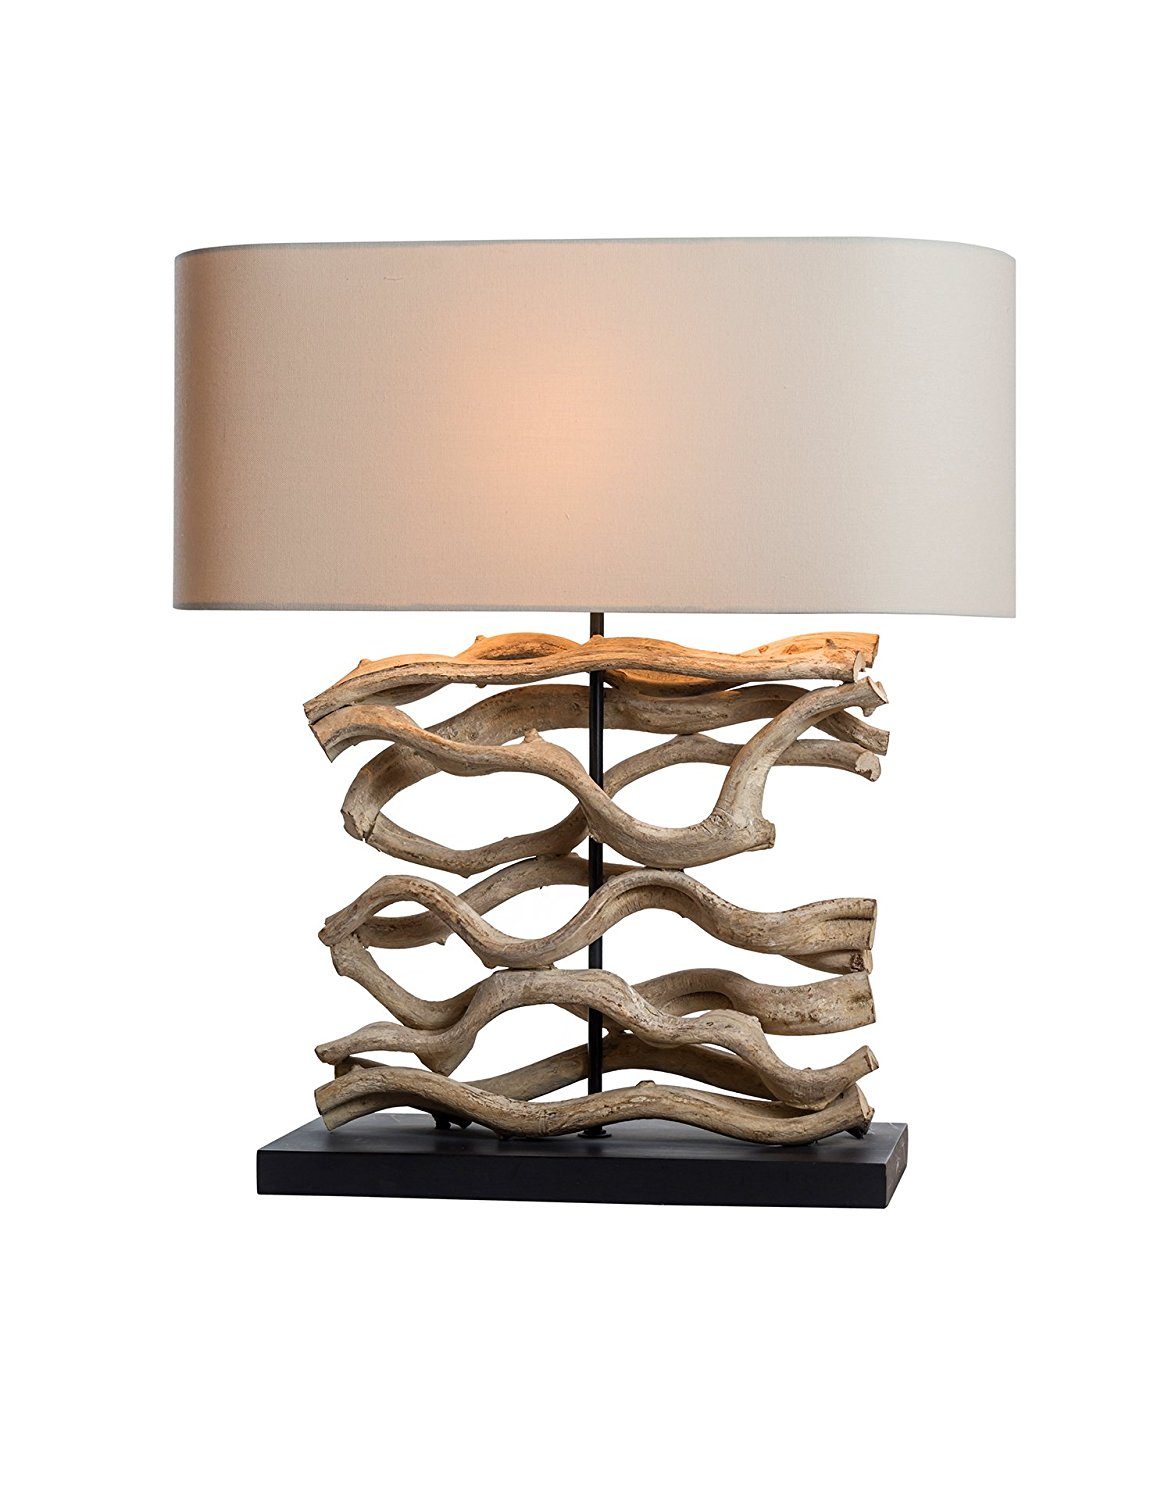 O'THENTIQUE Large Driftwood Vine Table Lamp   Natural Turned Twisted Wood Console Lamp with Linen Shade Design for Beach House Cabin Cottage Bedroom Living Room